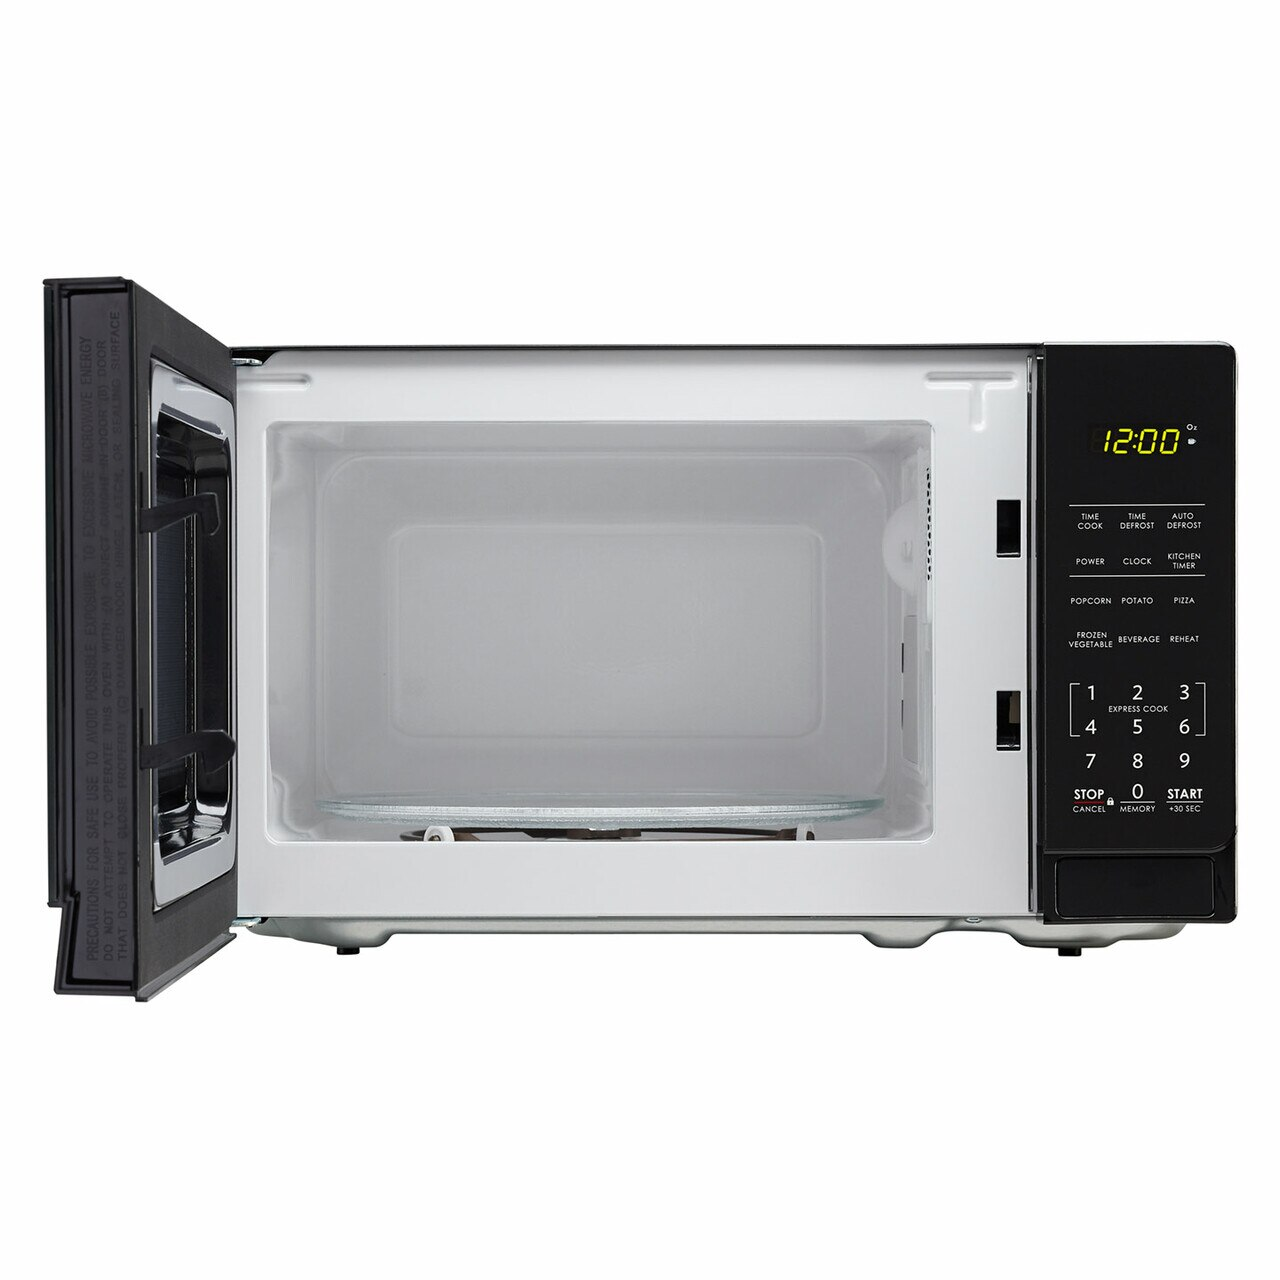 0.7 cu. ft. Sharp Black Countertop Microwave (SMC0710BB) – front view with door open